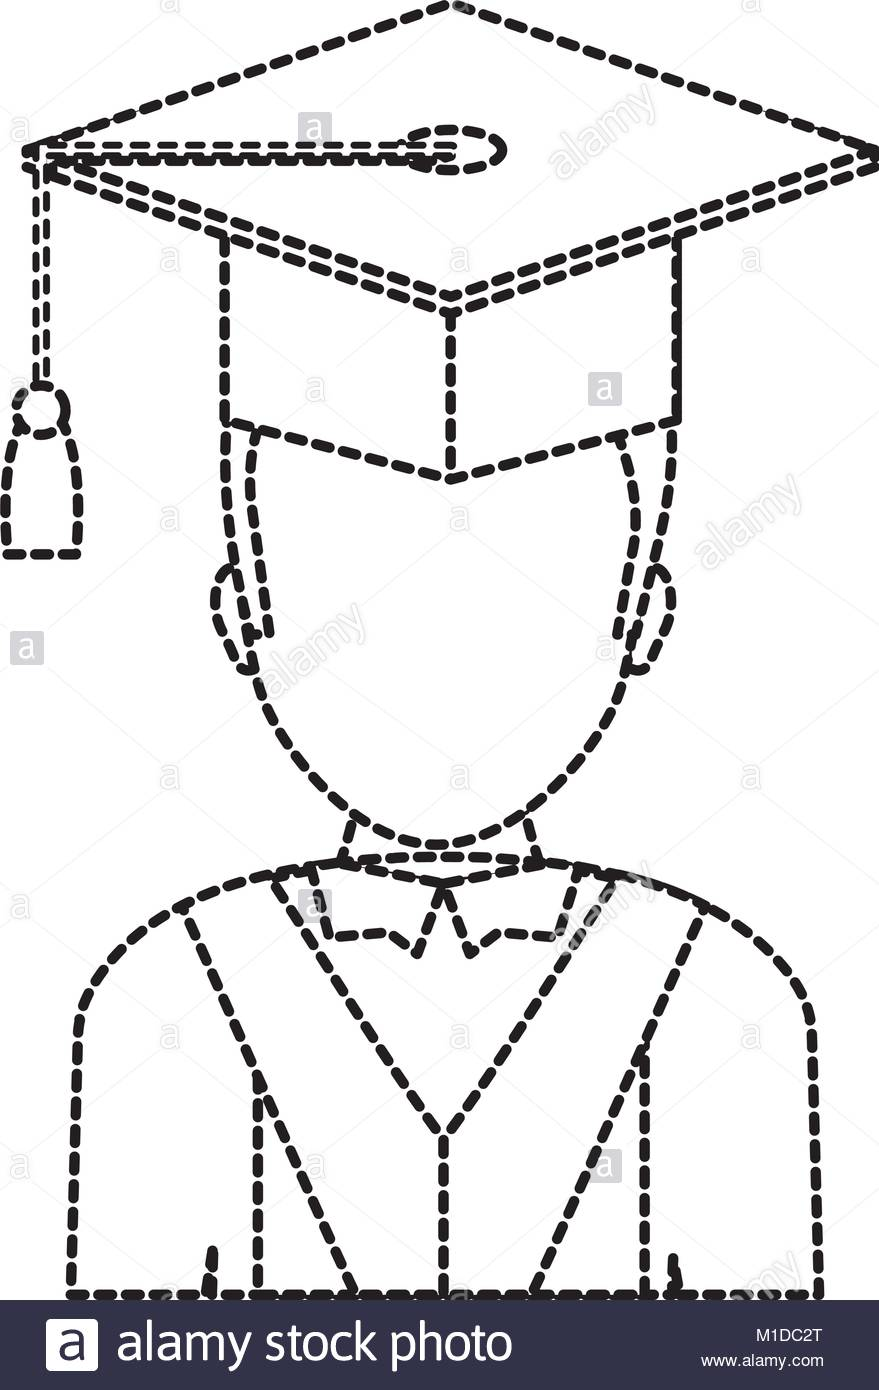 Graduation Gown Drawing at GetDrawings.com | Free for personal use ...